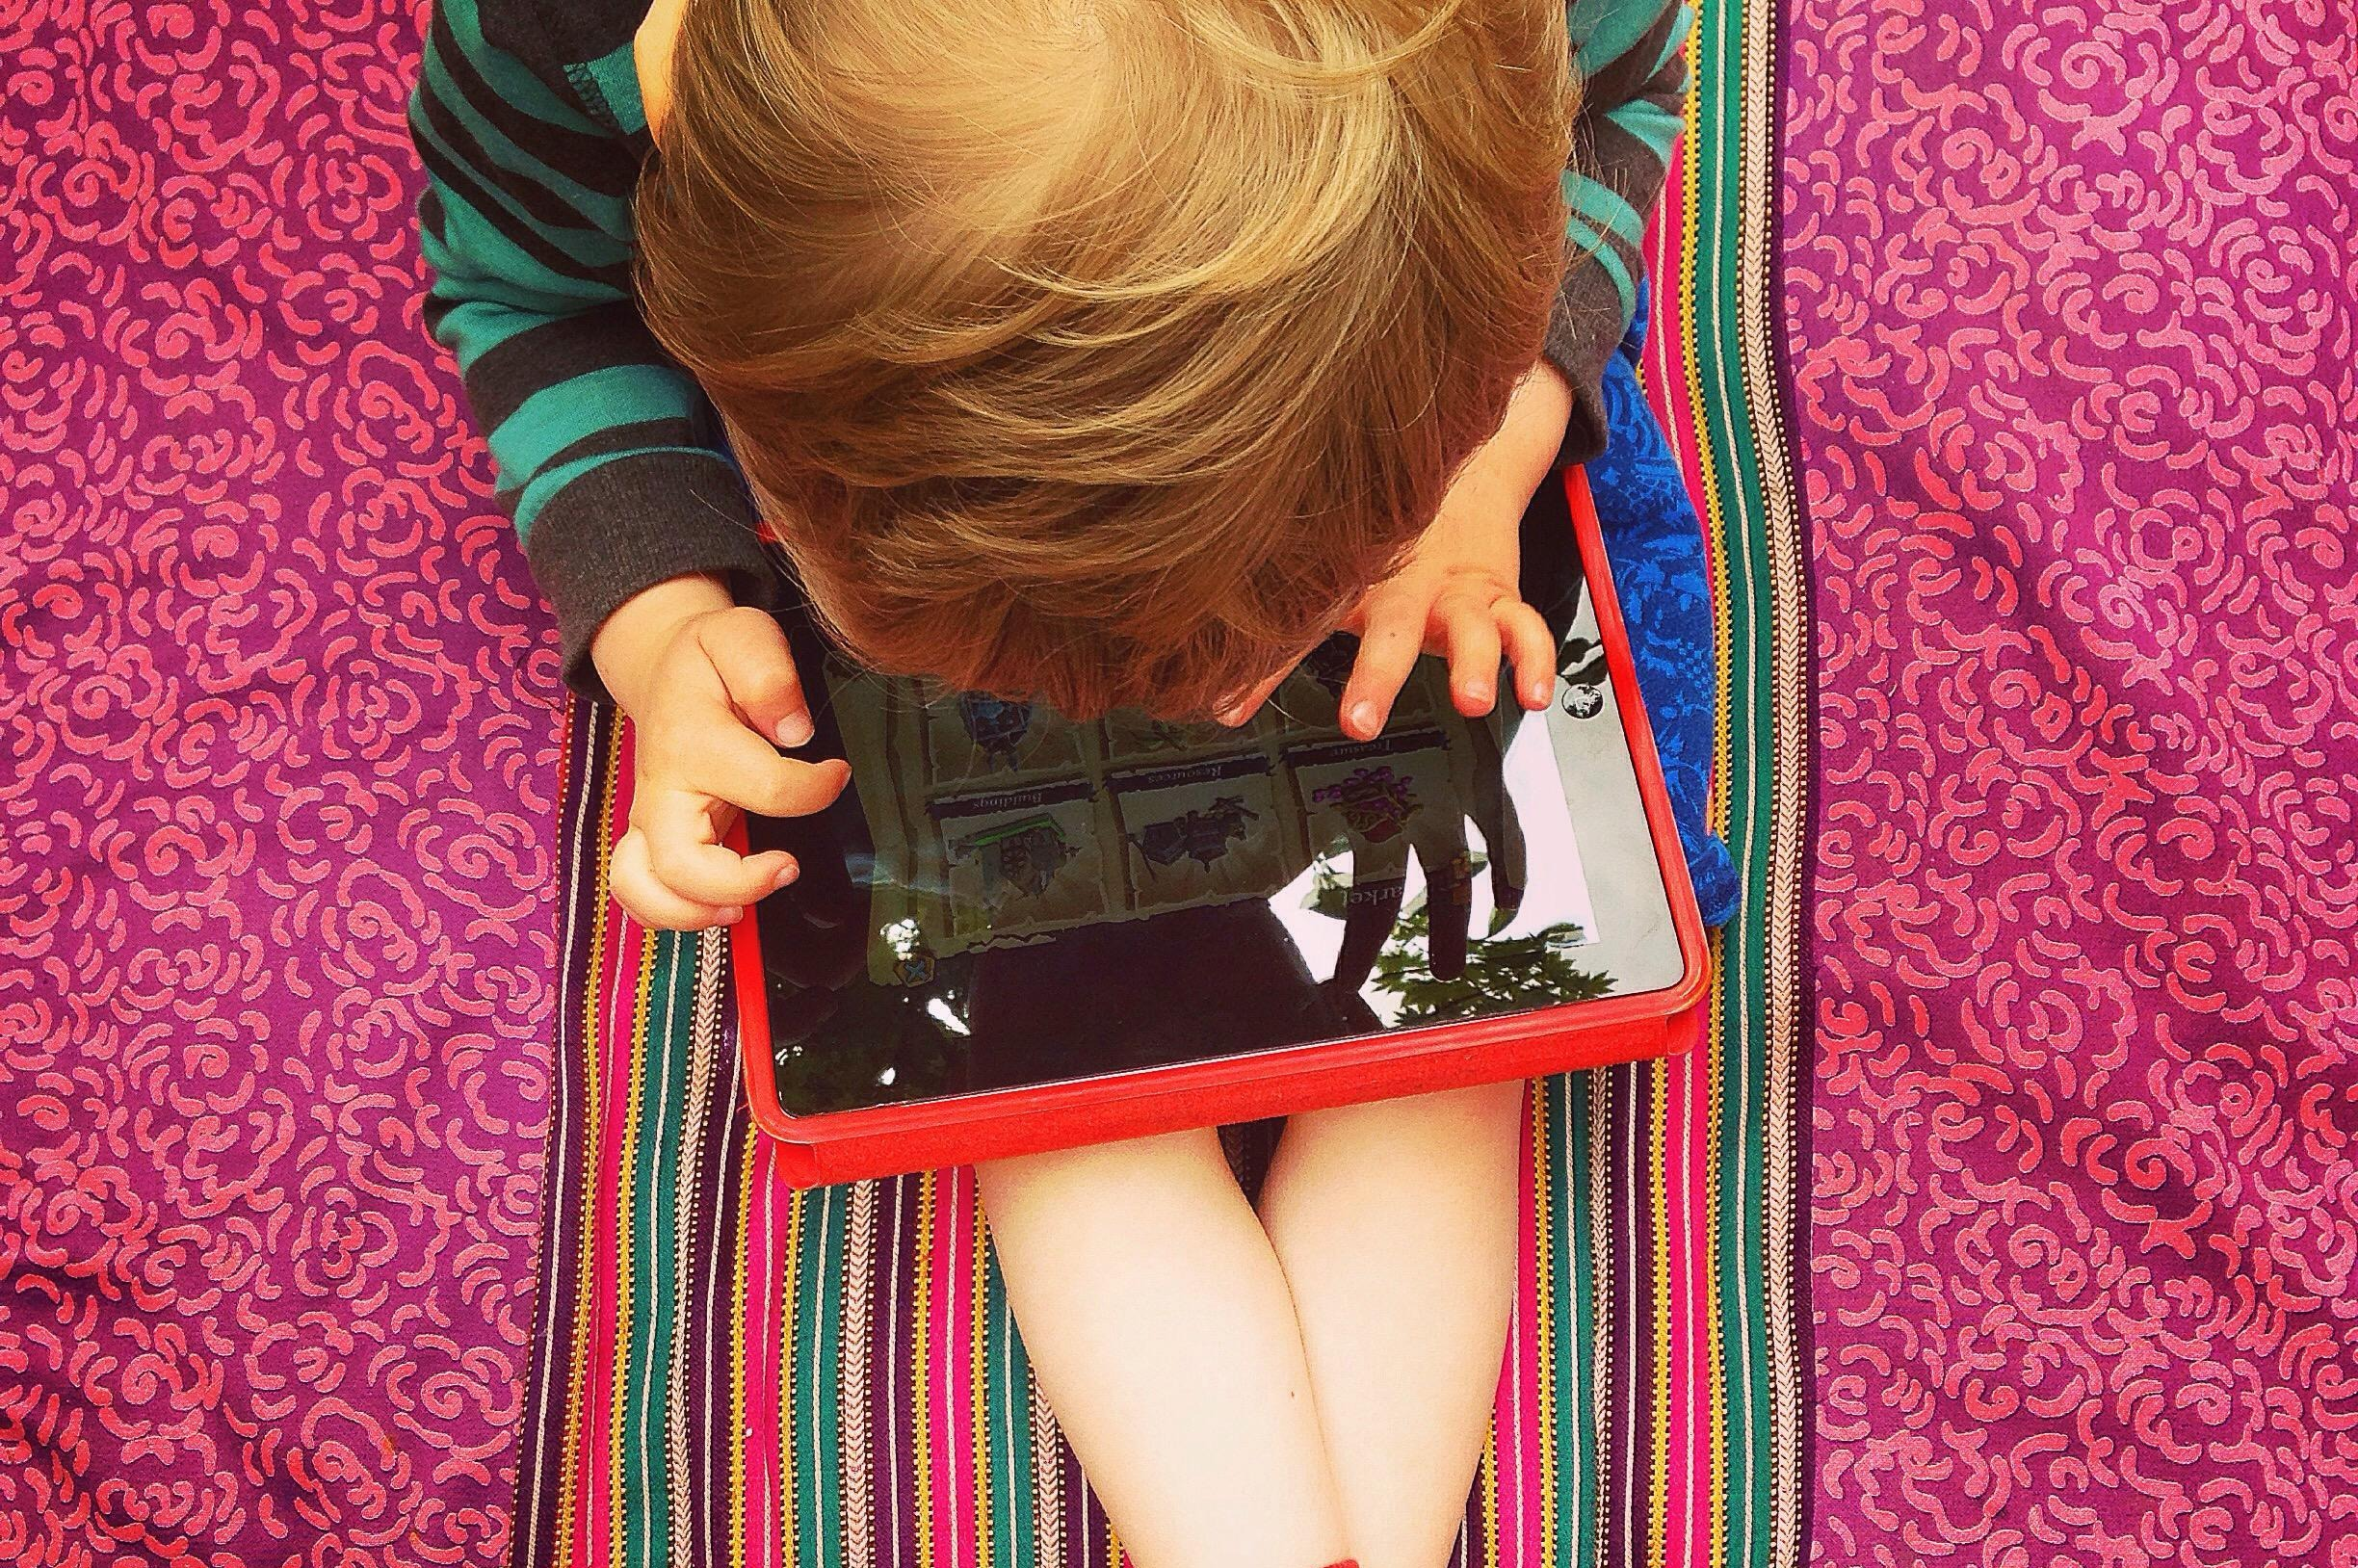 Kids can spend time learning online at no extra cost